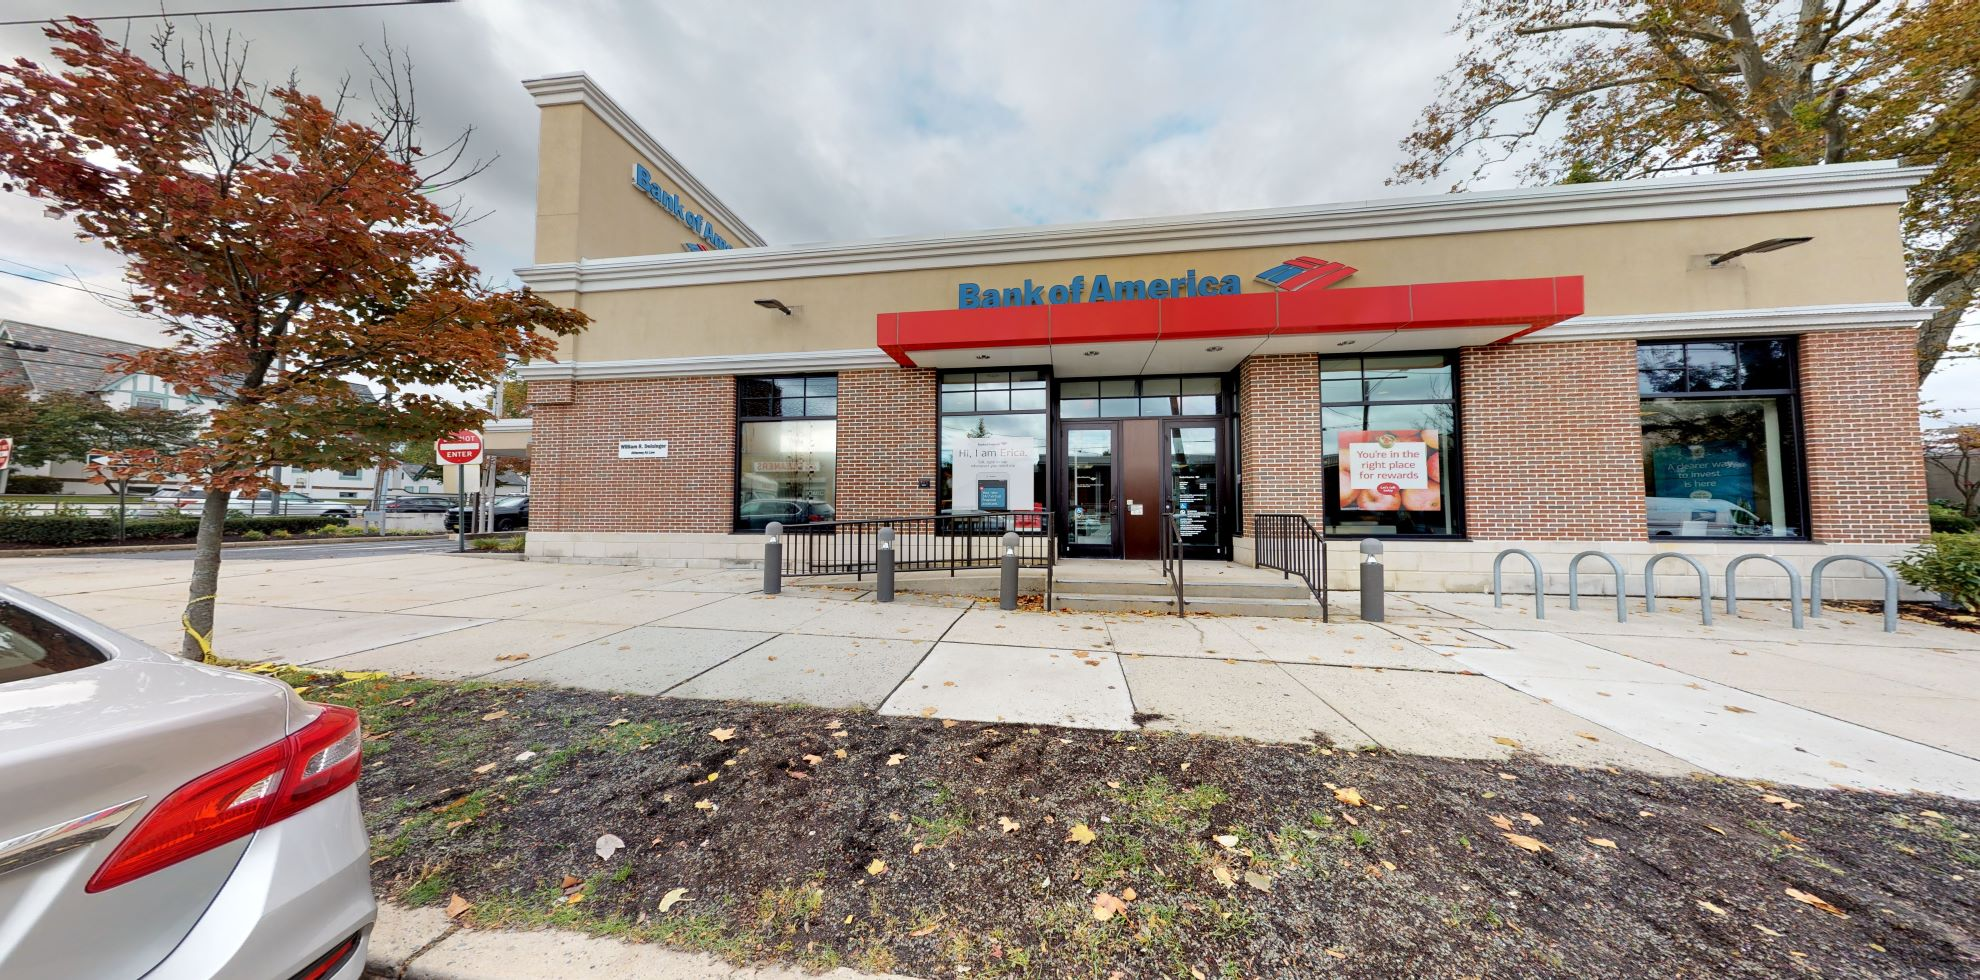 Bank of America financial center with drive-thru ATM and teller   170 Broad St STE 1000, Red Bank, NJ 07701